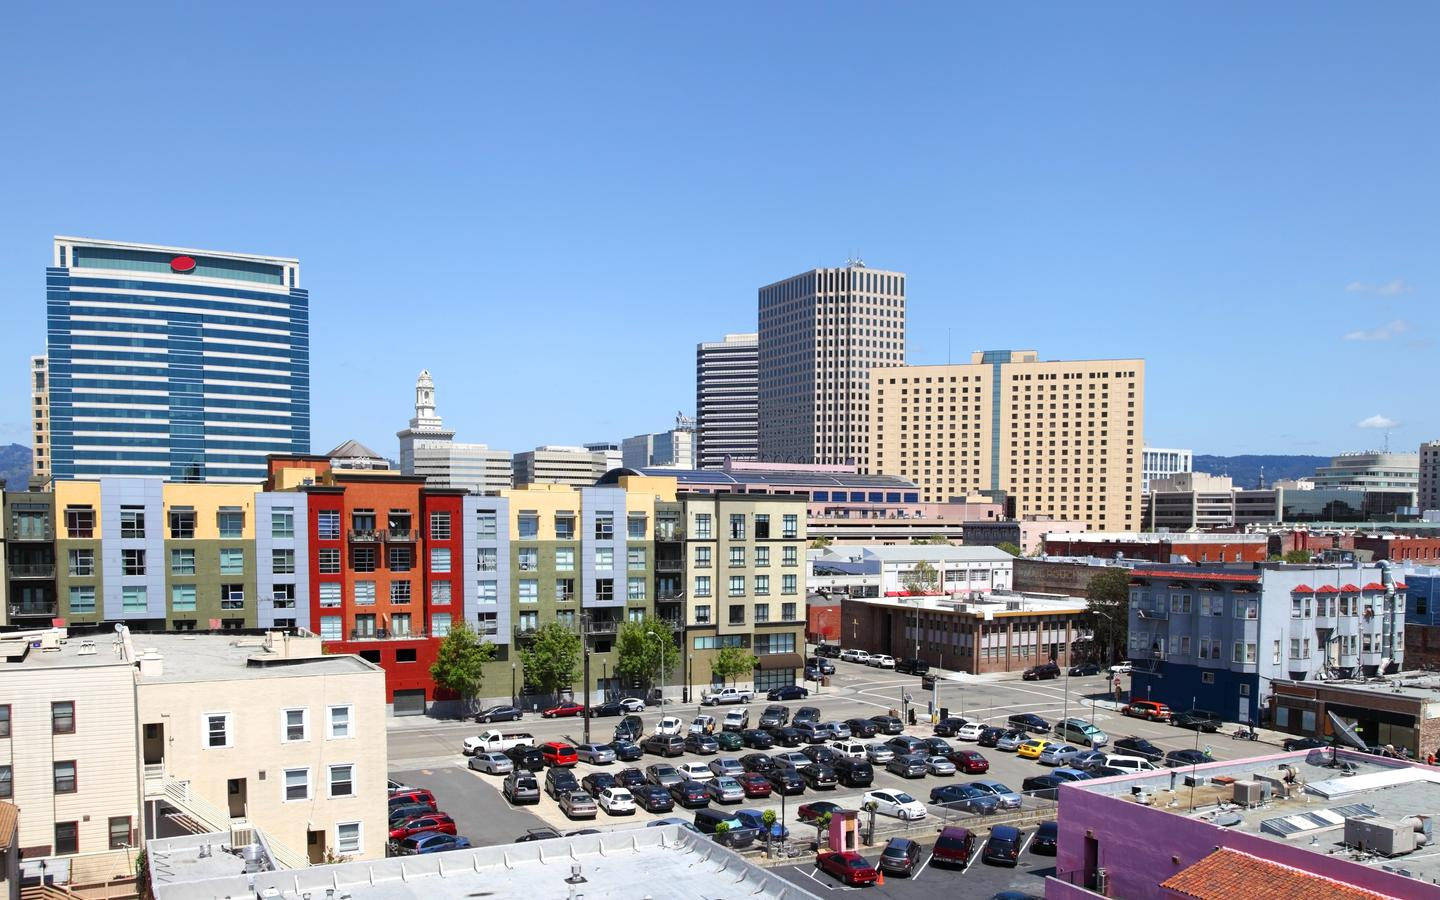 Cheap Flights from Raleigh to Oakland from $238 - KAYAK